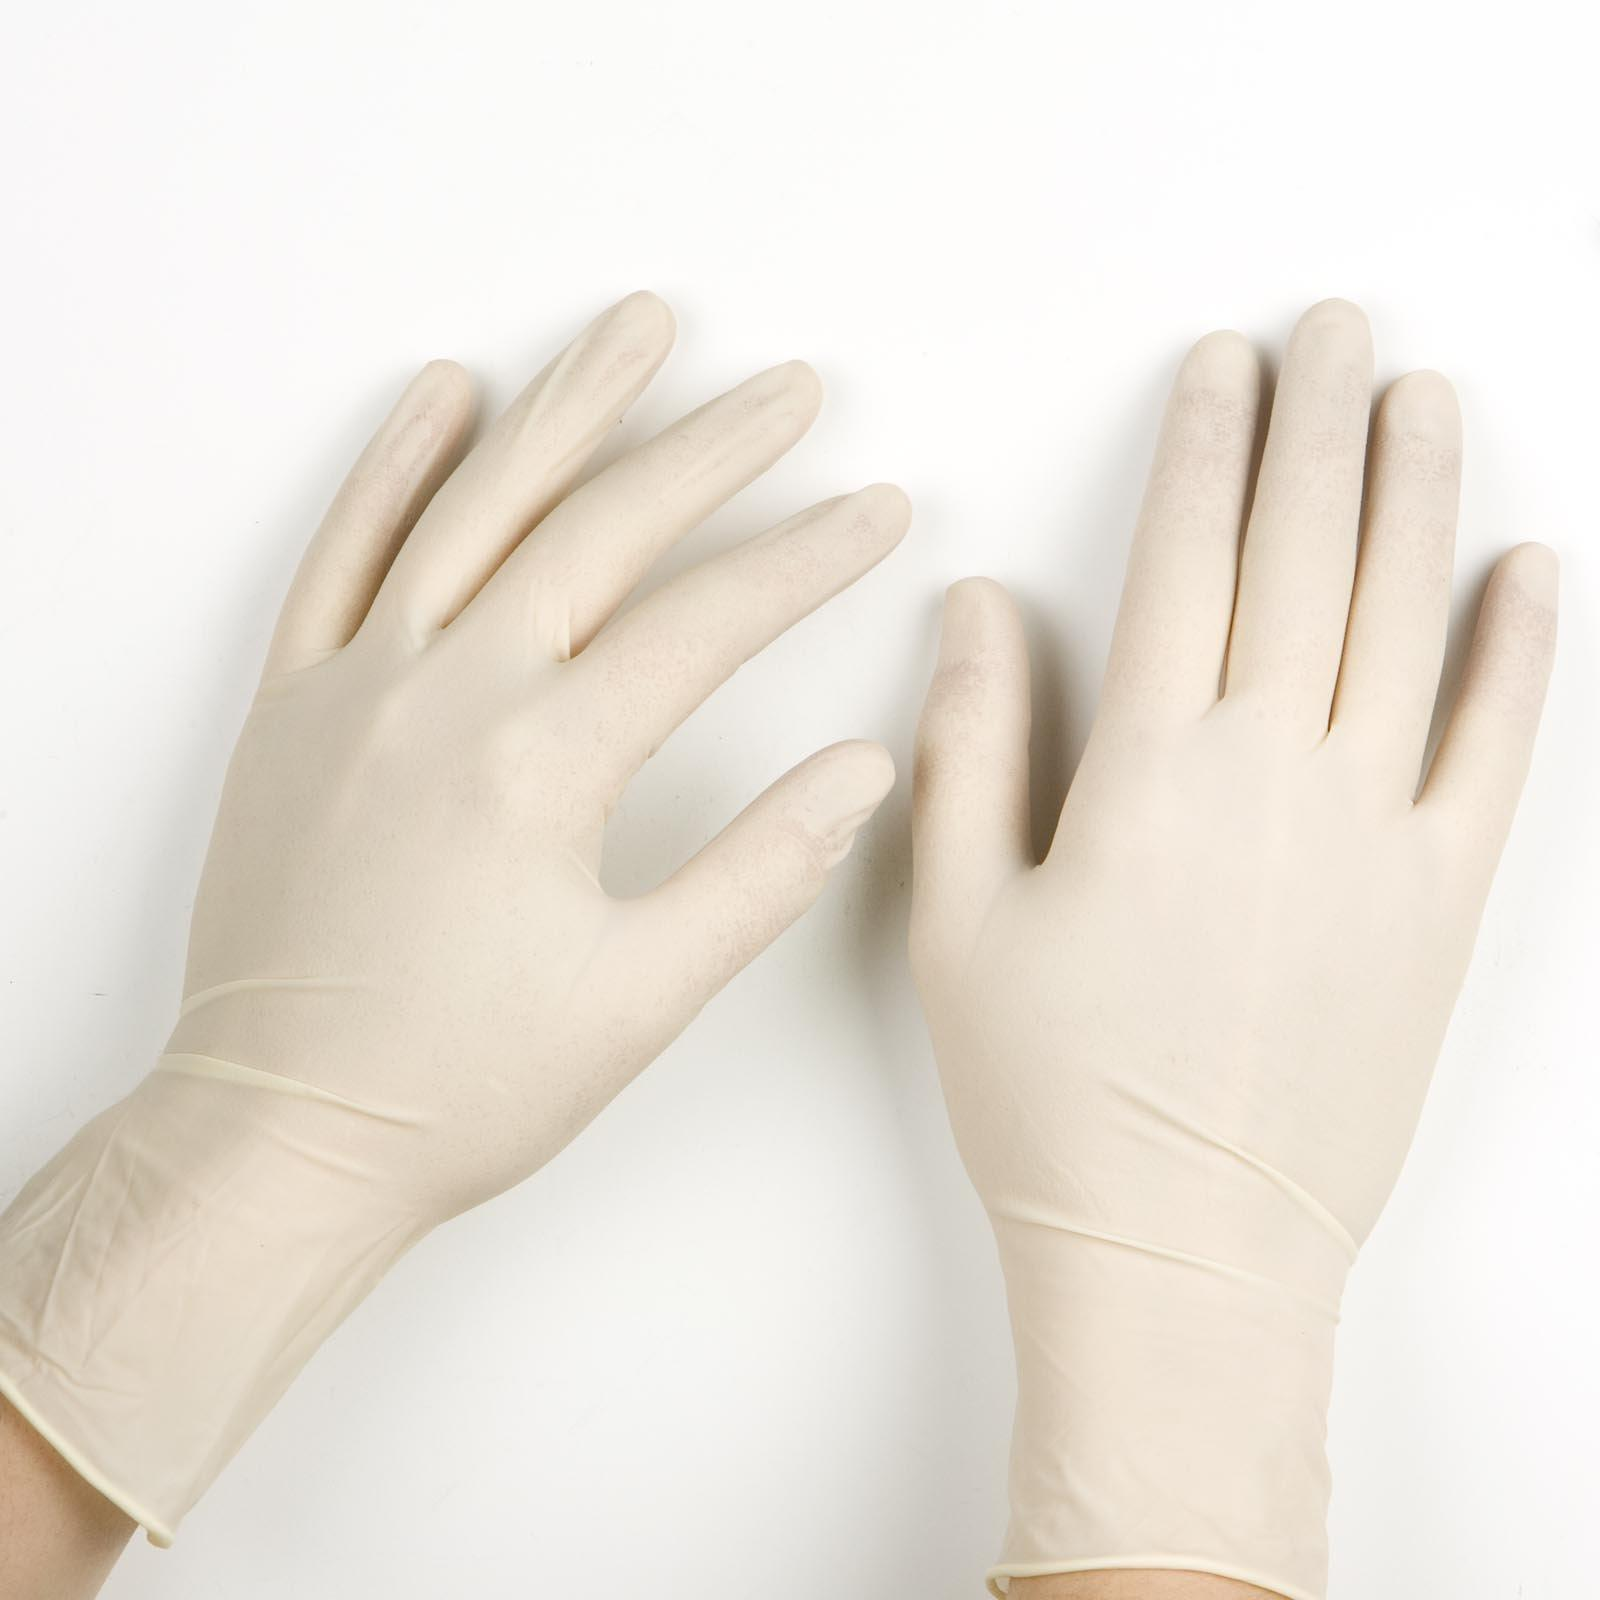 MEDICOM GLOVES LATEX POWDER FREE LARGE CLEAR BOX 100